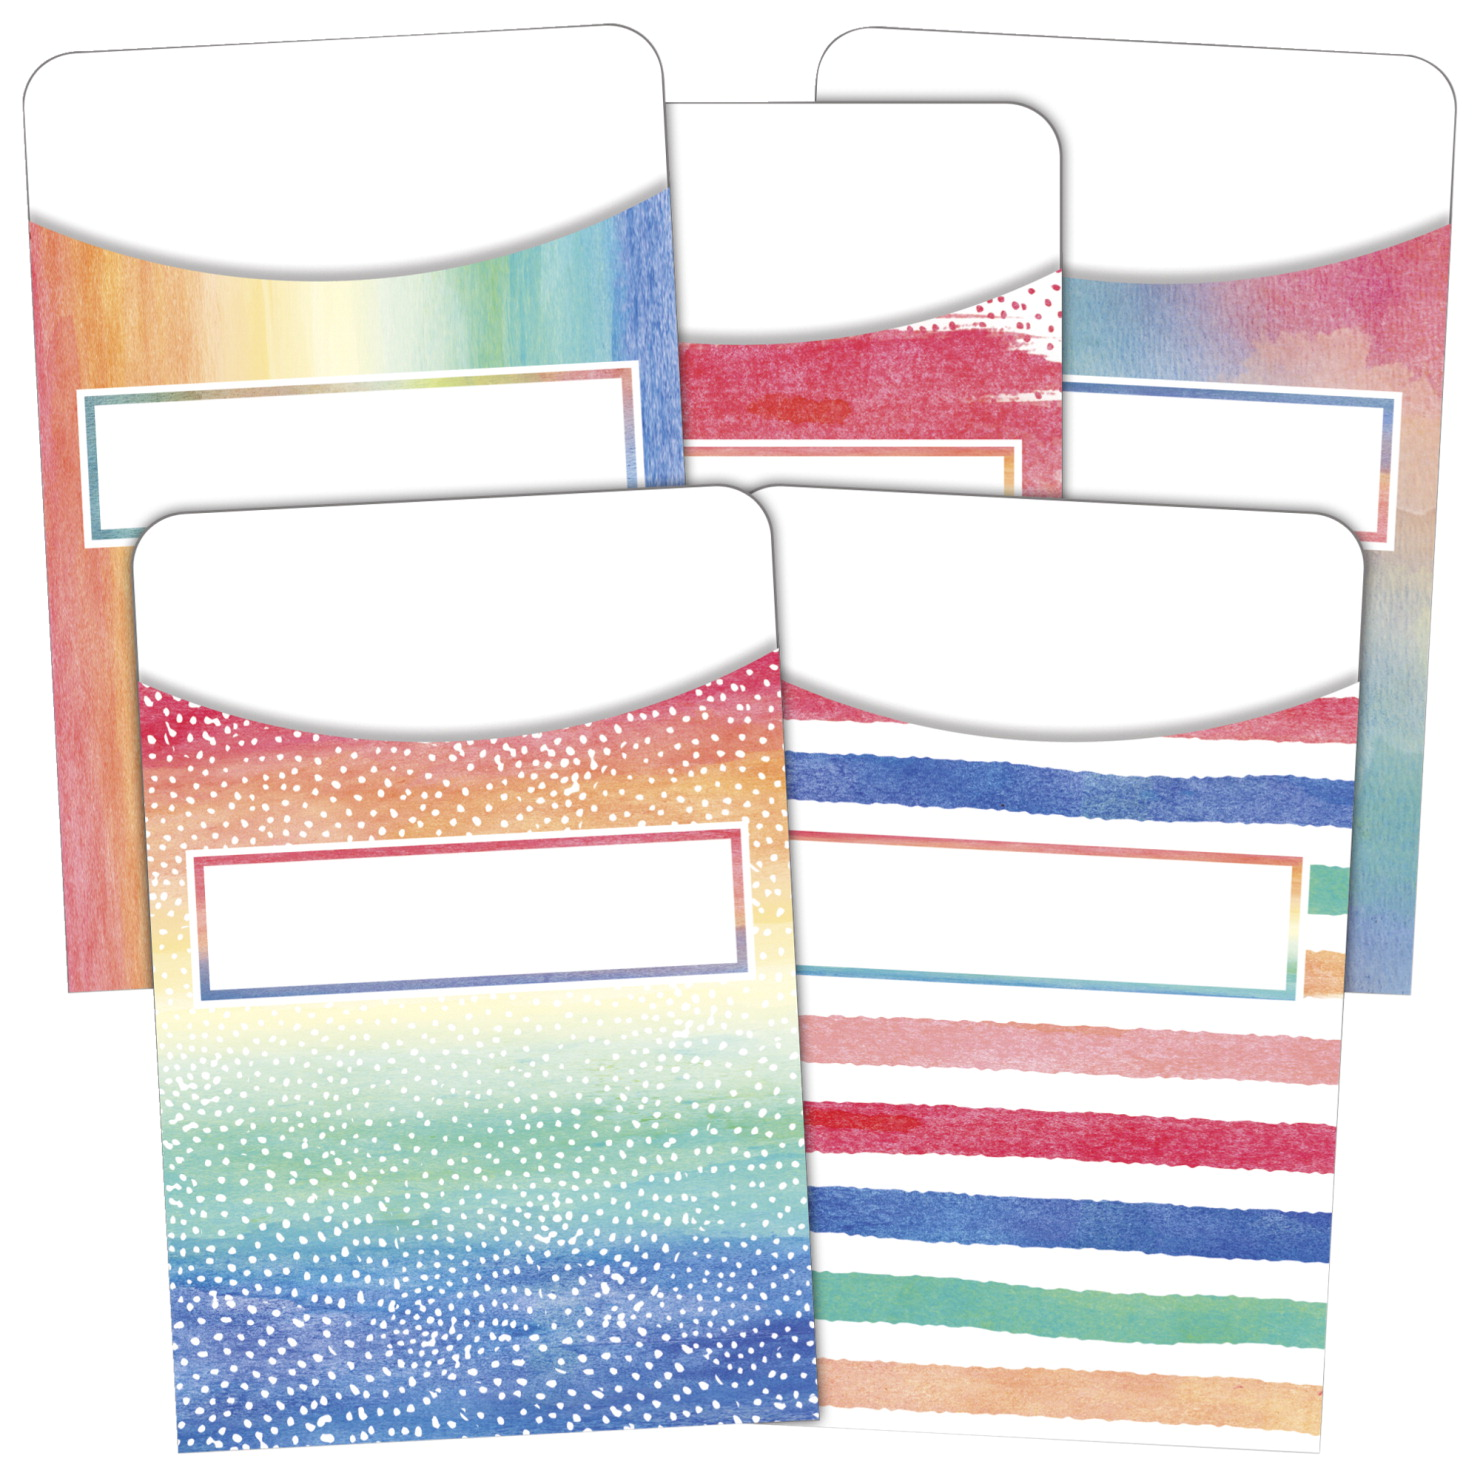 Teacher Created Resources Library Pockets, 3-1/2 x 5 Inches, Watercolors, Set of 35